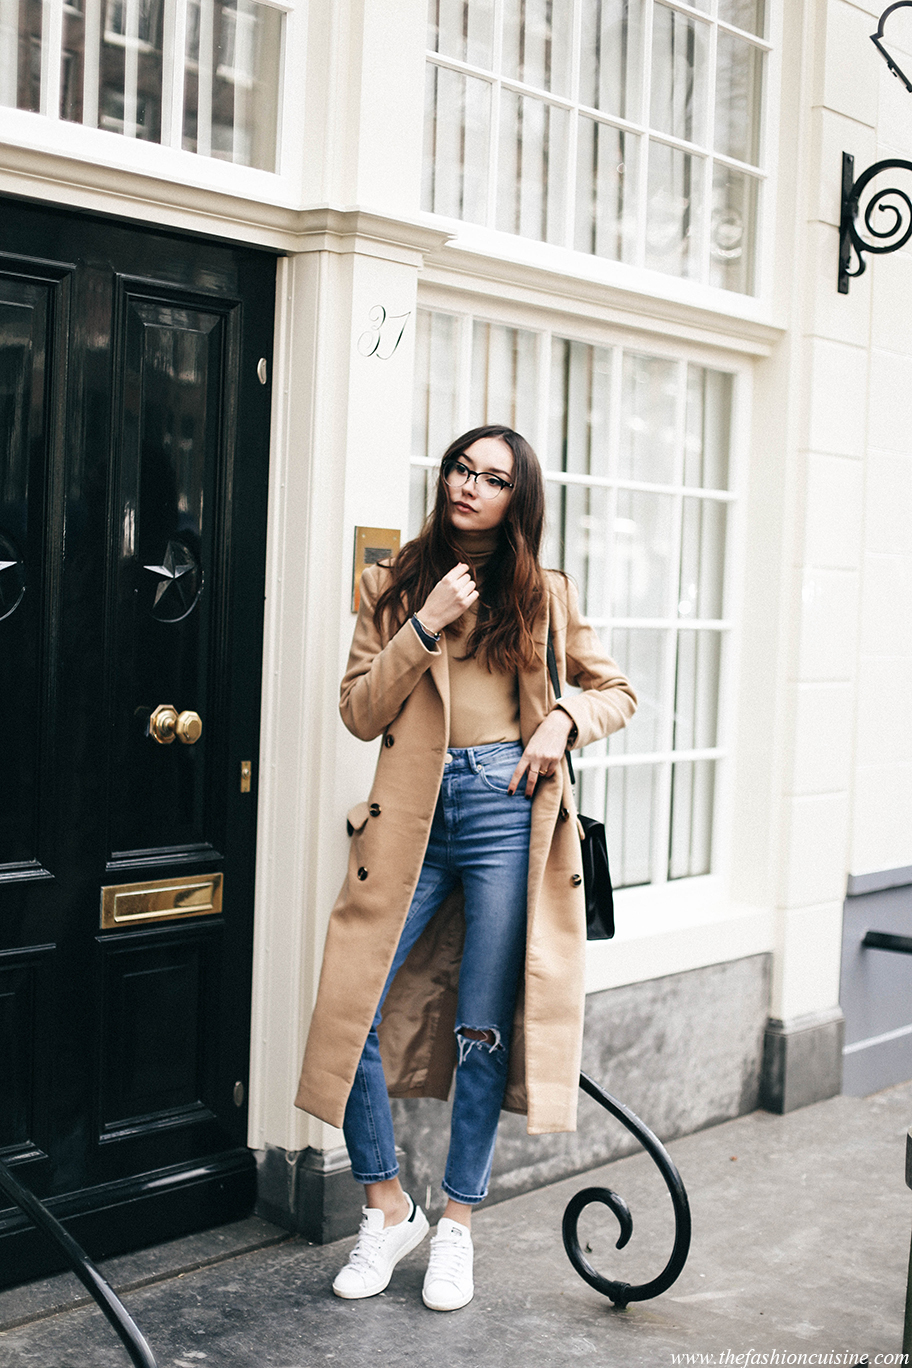 Beatrice Gutu looks ultra chic in this retro outfit consisting of a maxi camel coat, distressed high waisted jeans, and a pair of classic Adidas Stan Smith sneakers. Coat: Missguided, Turtleneck: Zara, Jeans: Asos, Sneakers: Adidas.